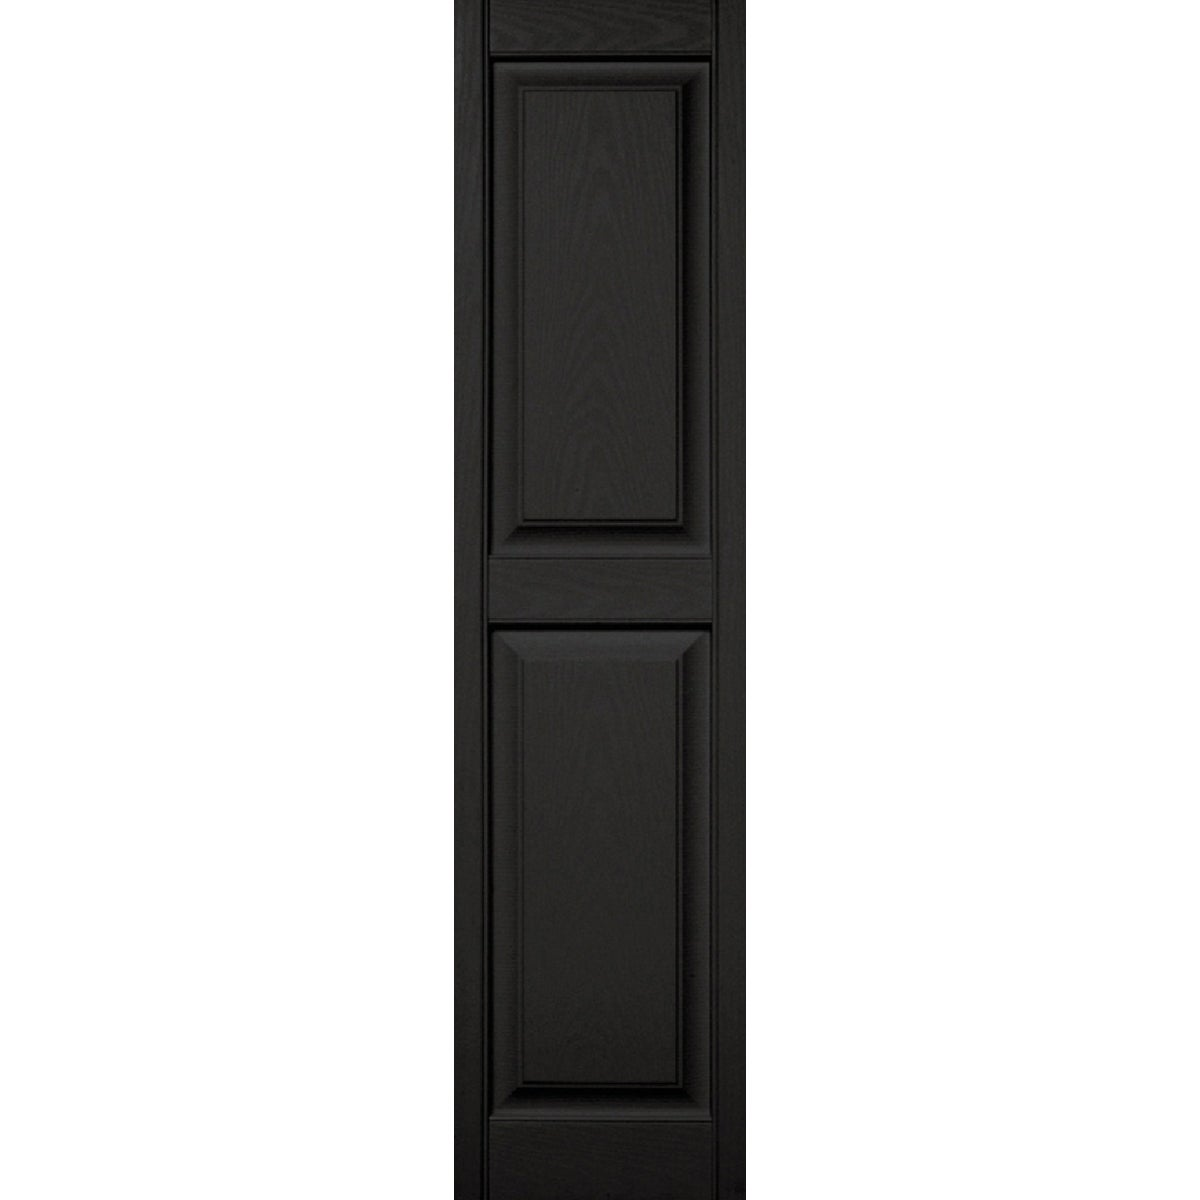 15X59 BLK PANEL SHUTTER - 040140059002 by The Tapco Group